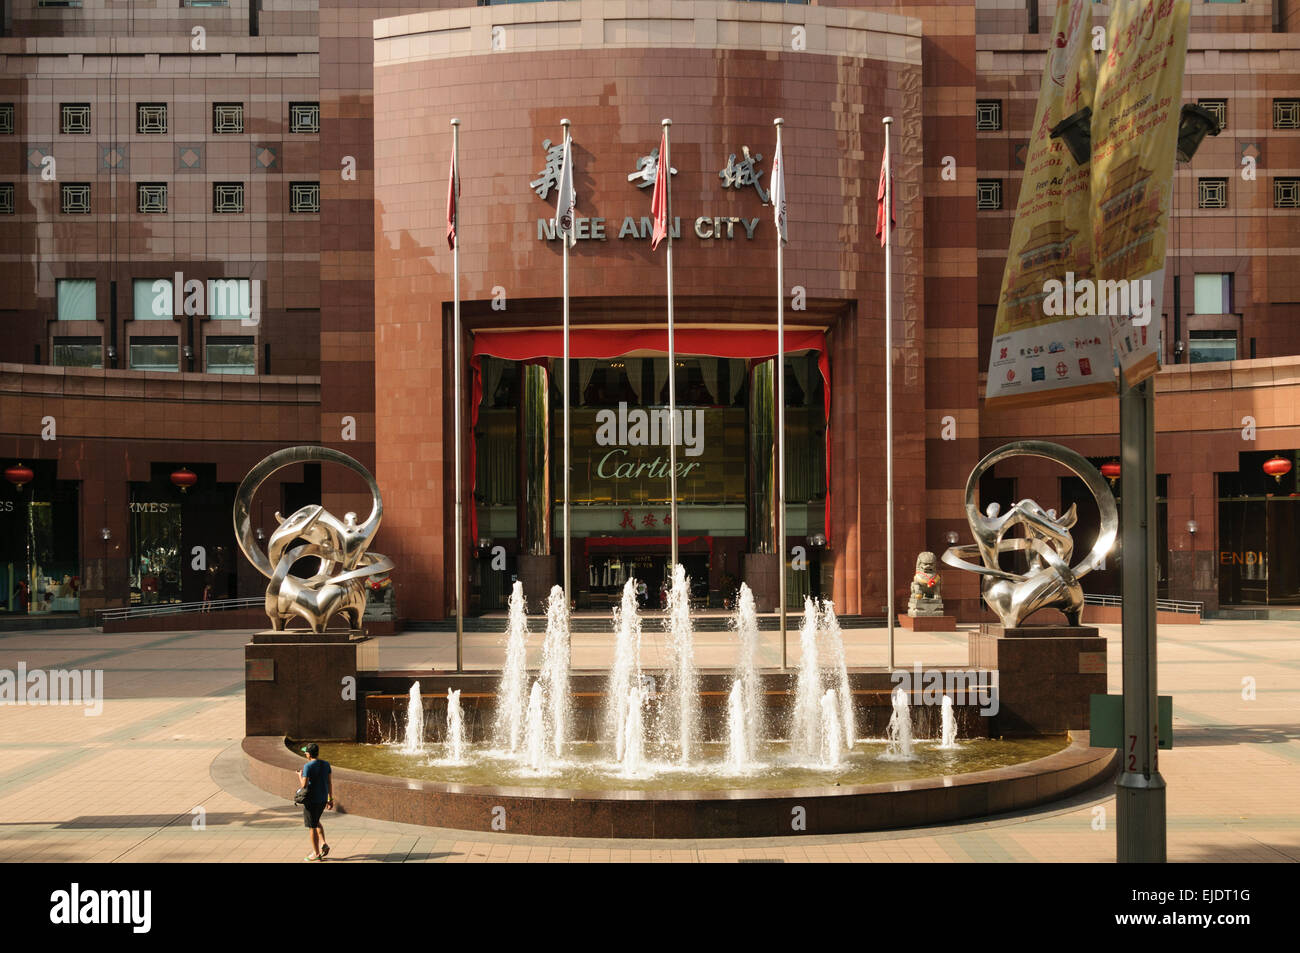 Ngee Ann City shopping centre and commercial building located on Orchard Road, Singapore. Stock Photo